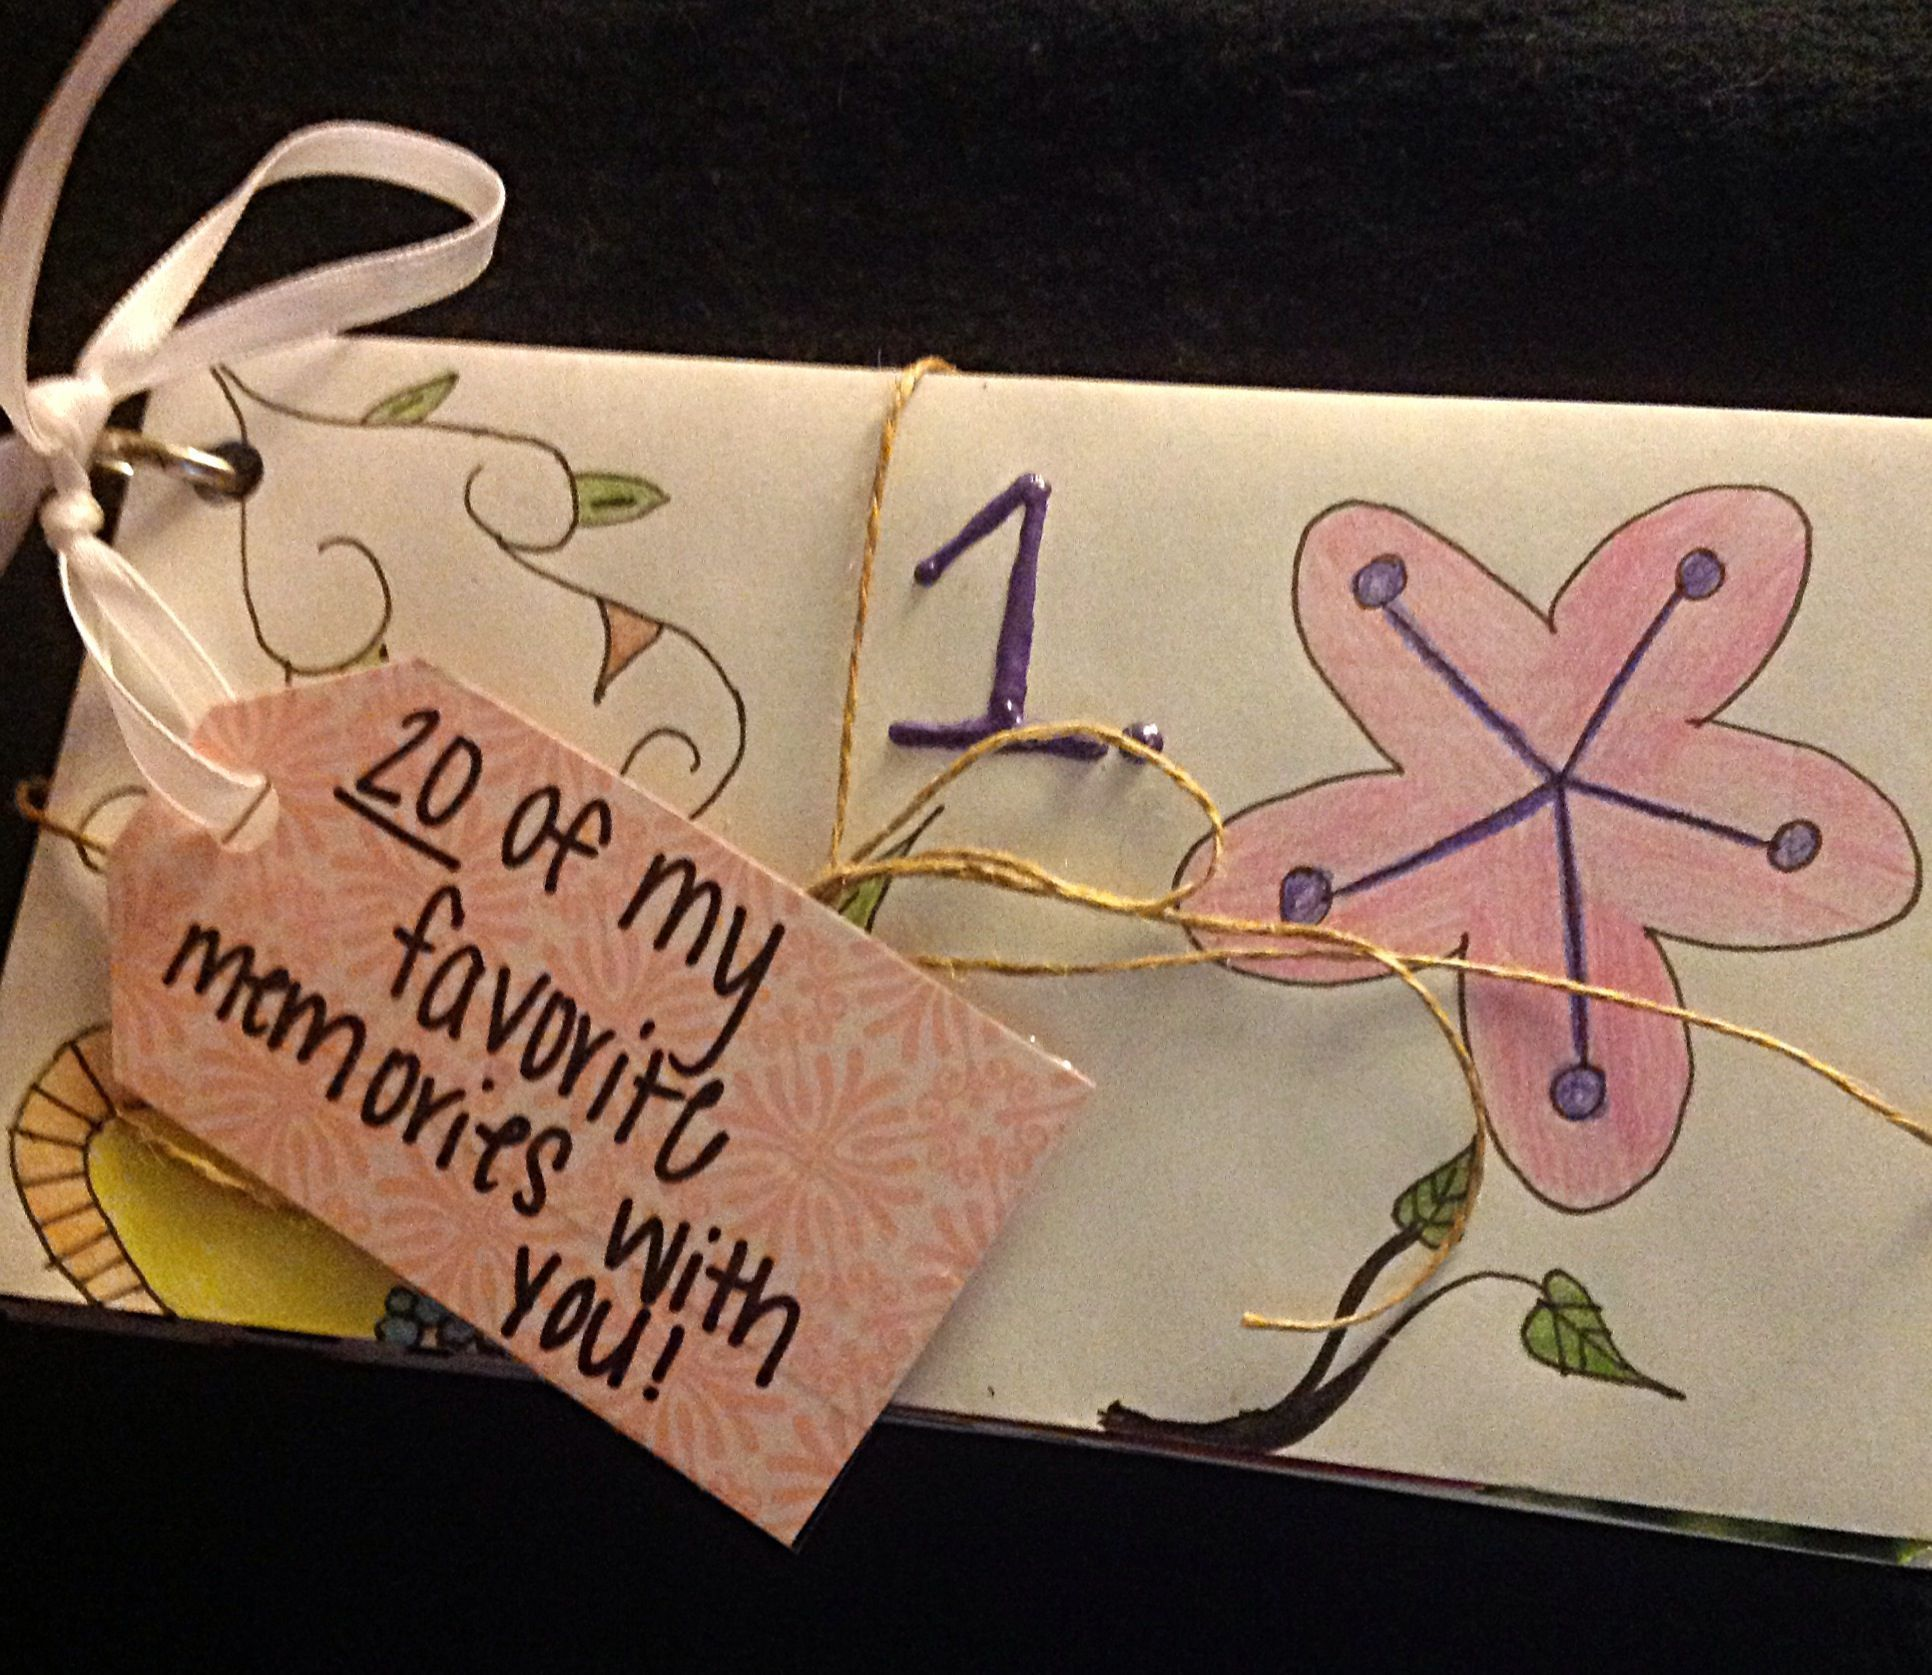 I Wrote 20 Of My Favorite Memories With Friend For Her 20th Birthday Just Get Envelopes And Write Or Type Your Stick Them In The